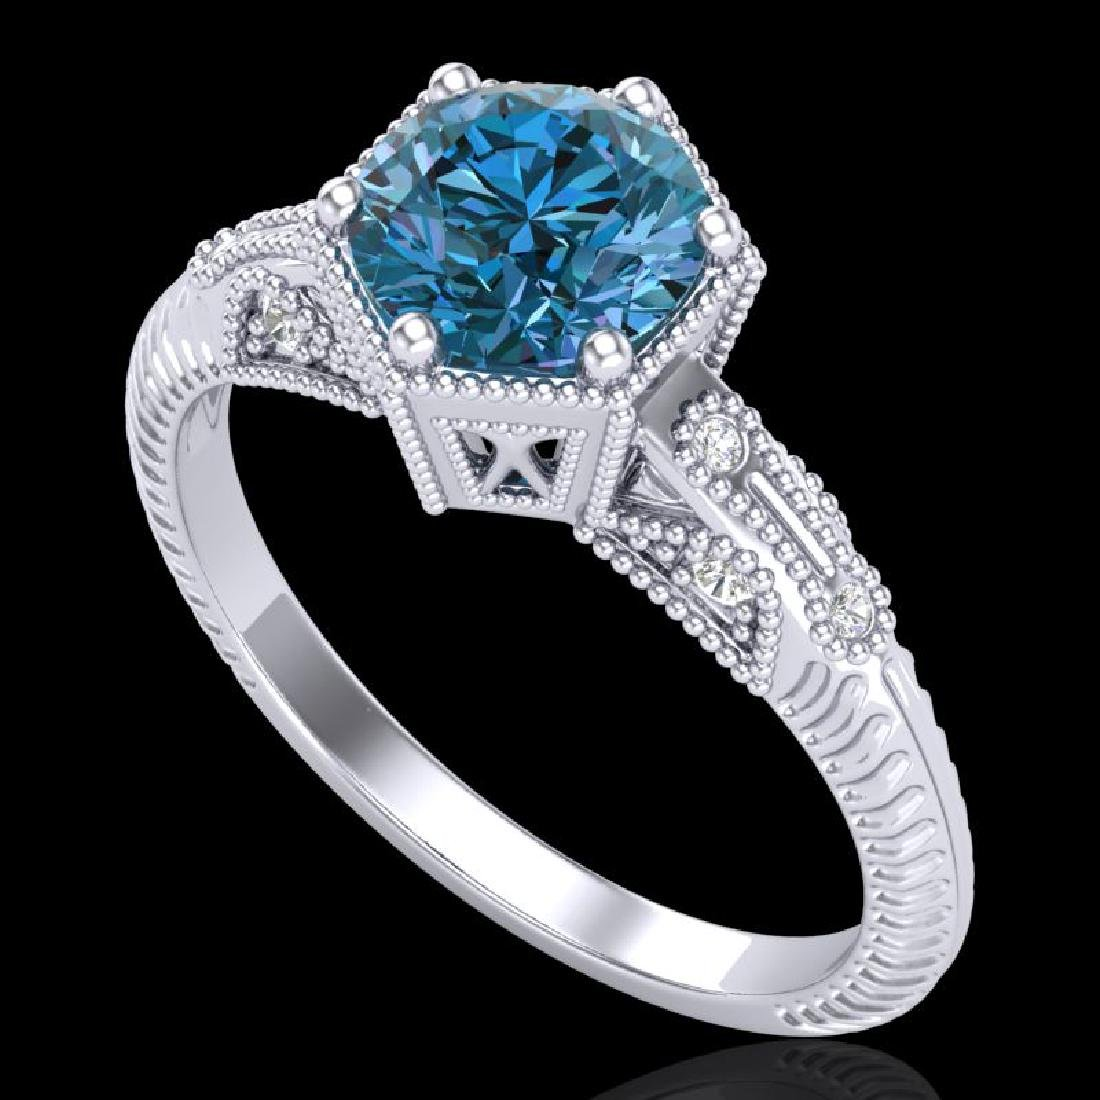 1.17 CTW Fancy Intense Blue Diamond Solitaire Art Deco